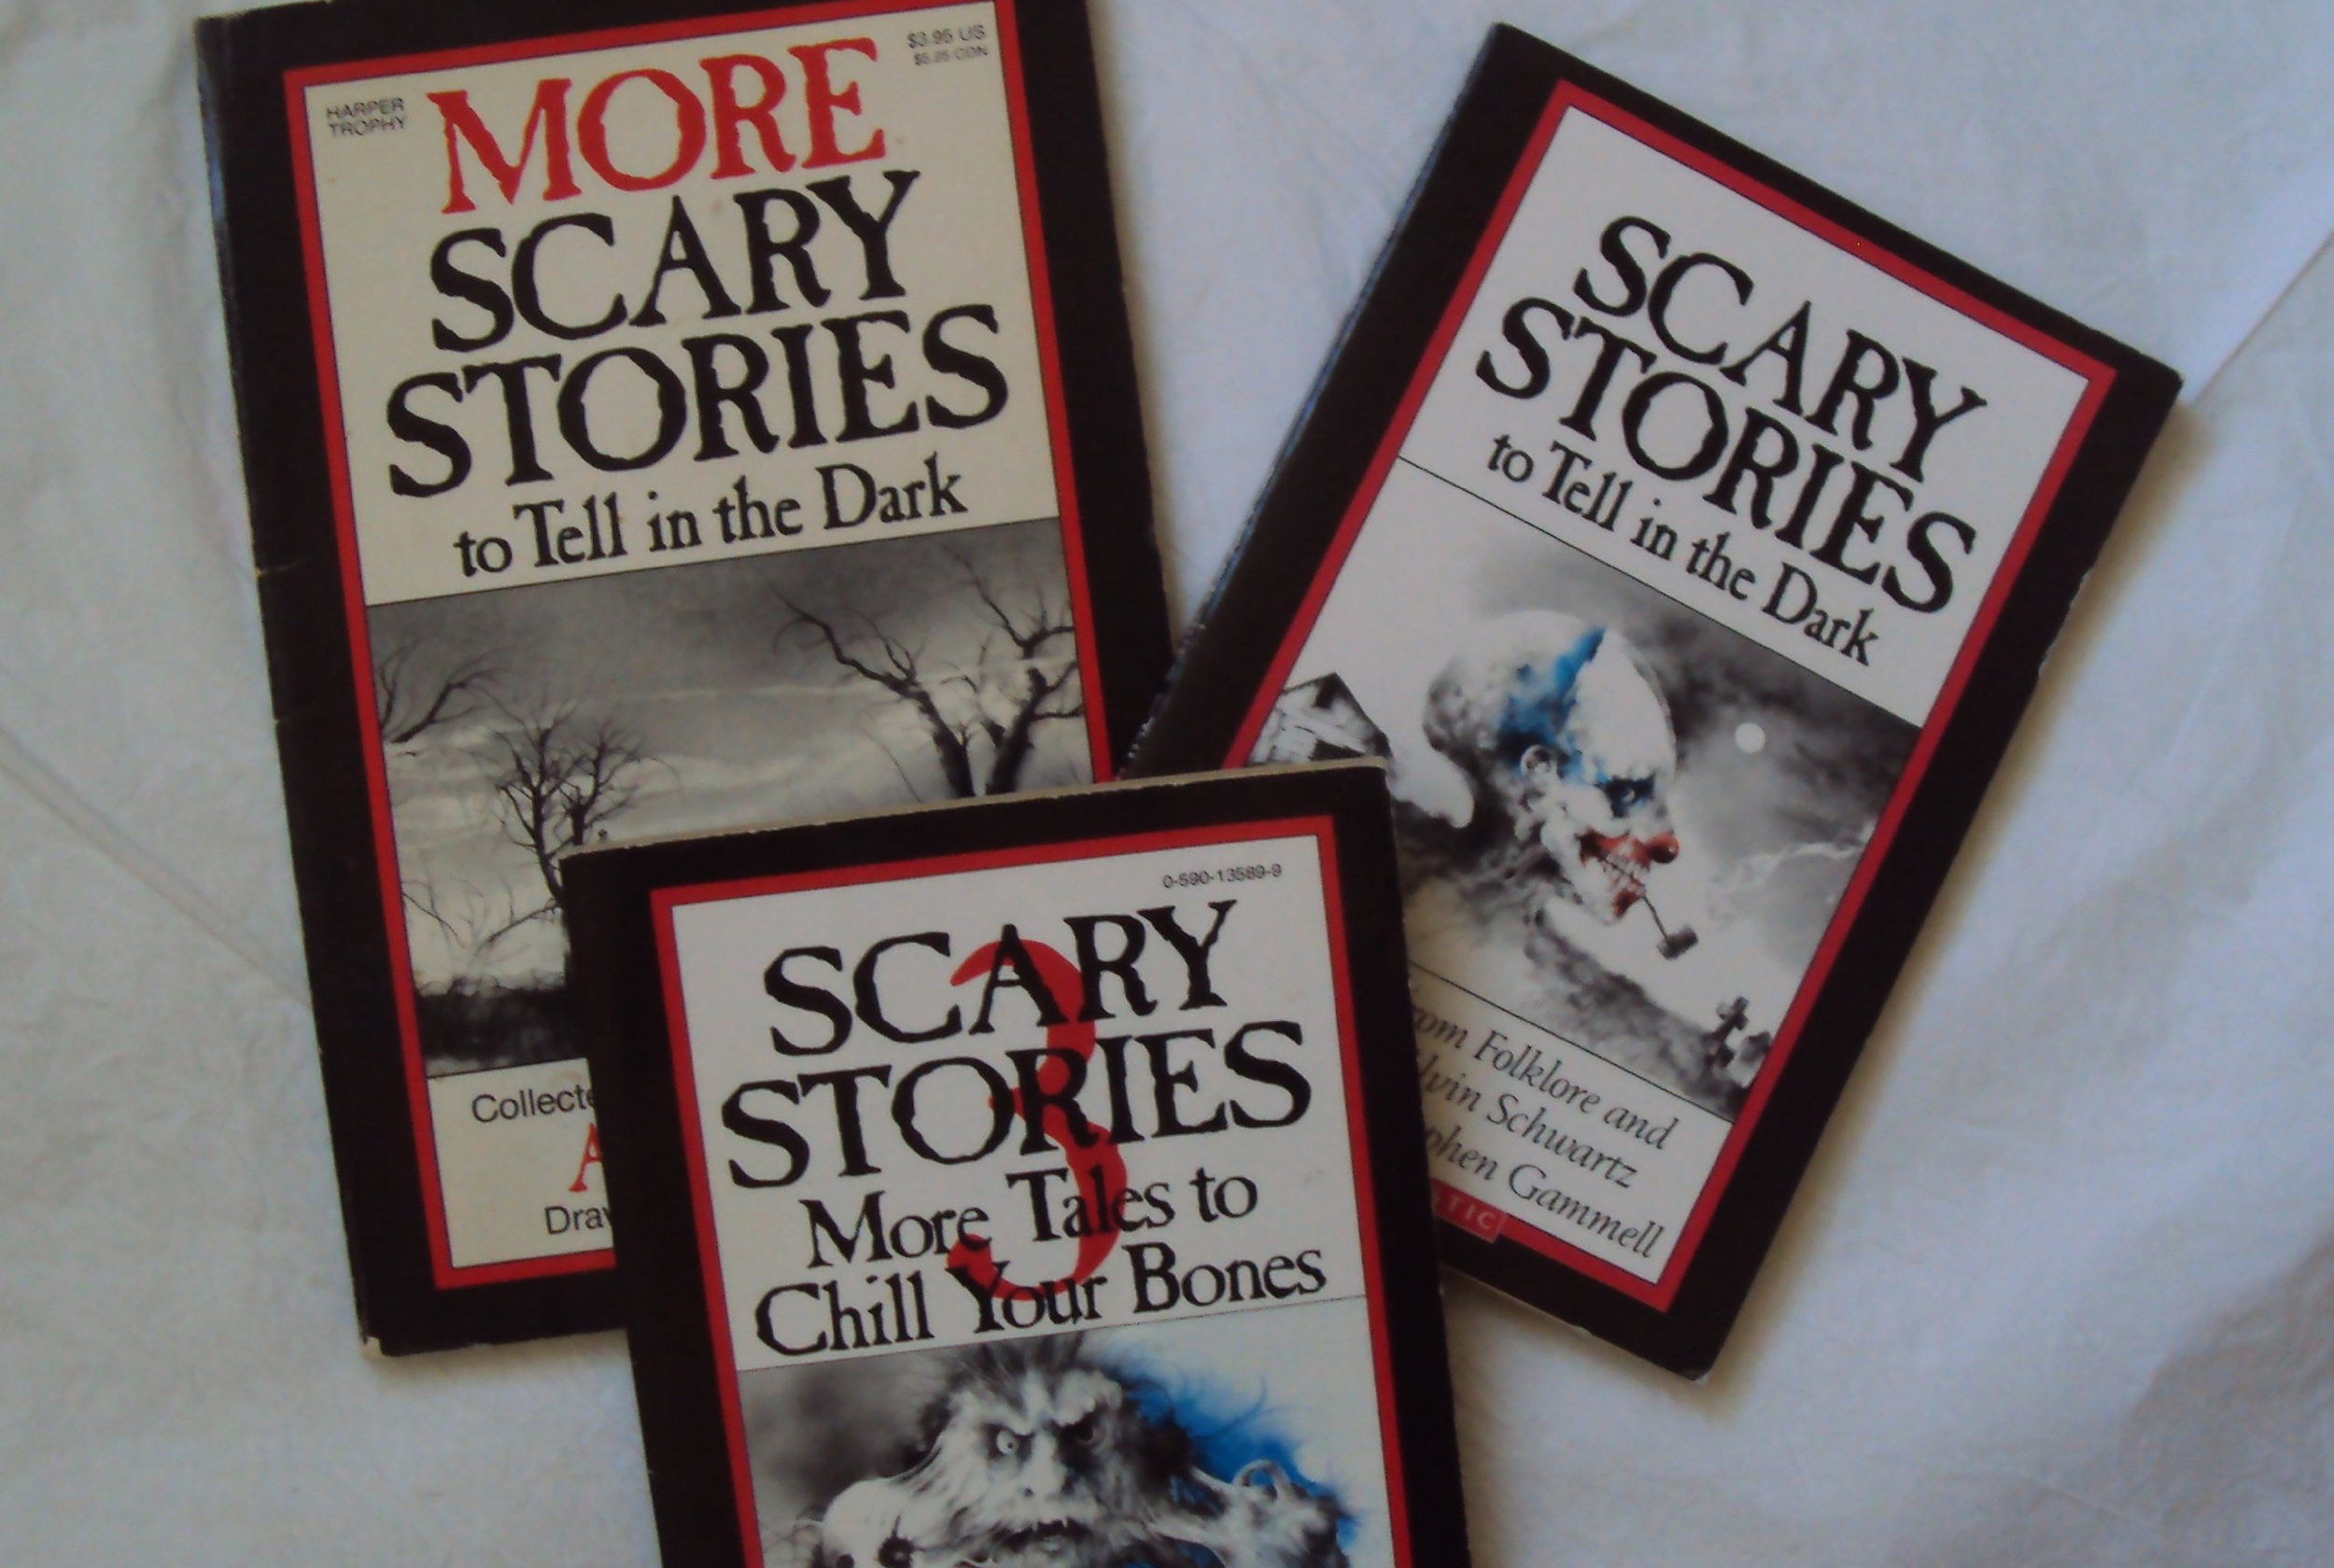 Scary Stories to Tell in the Dark books